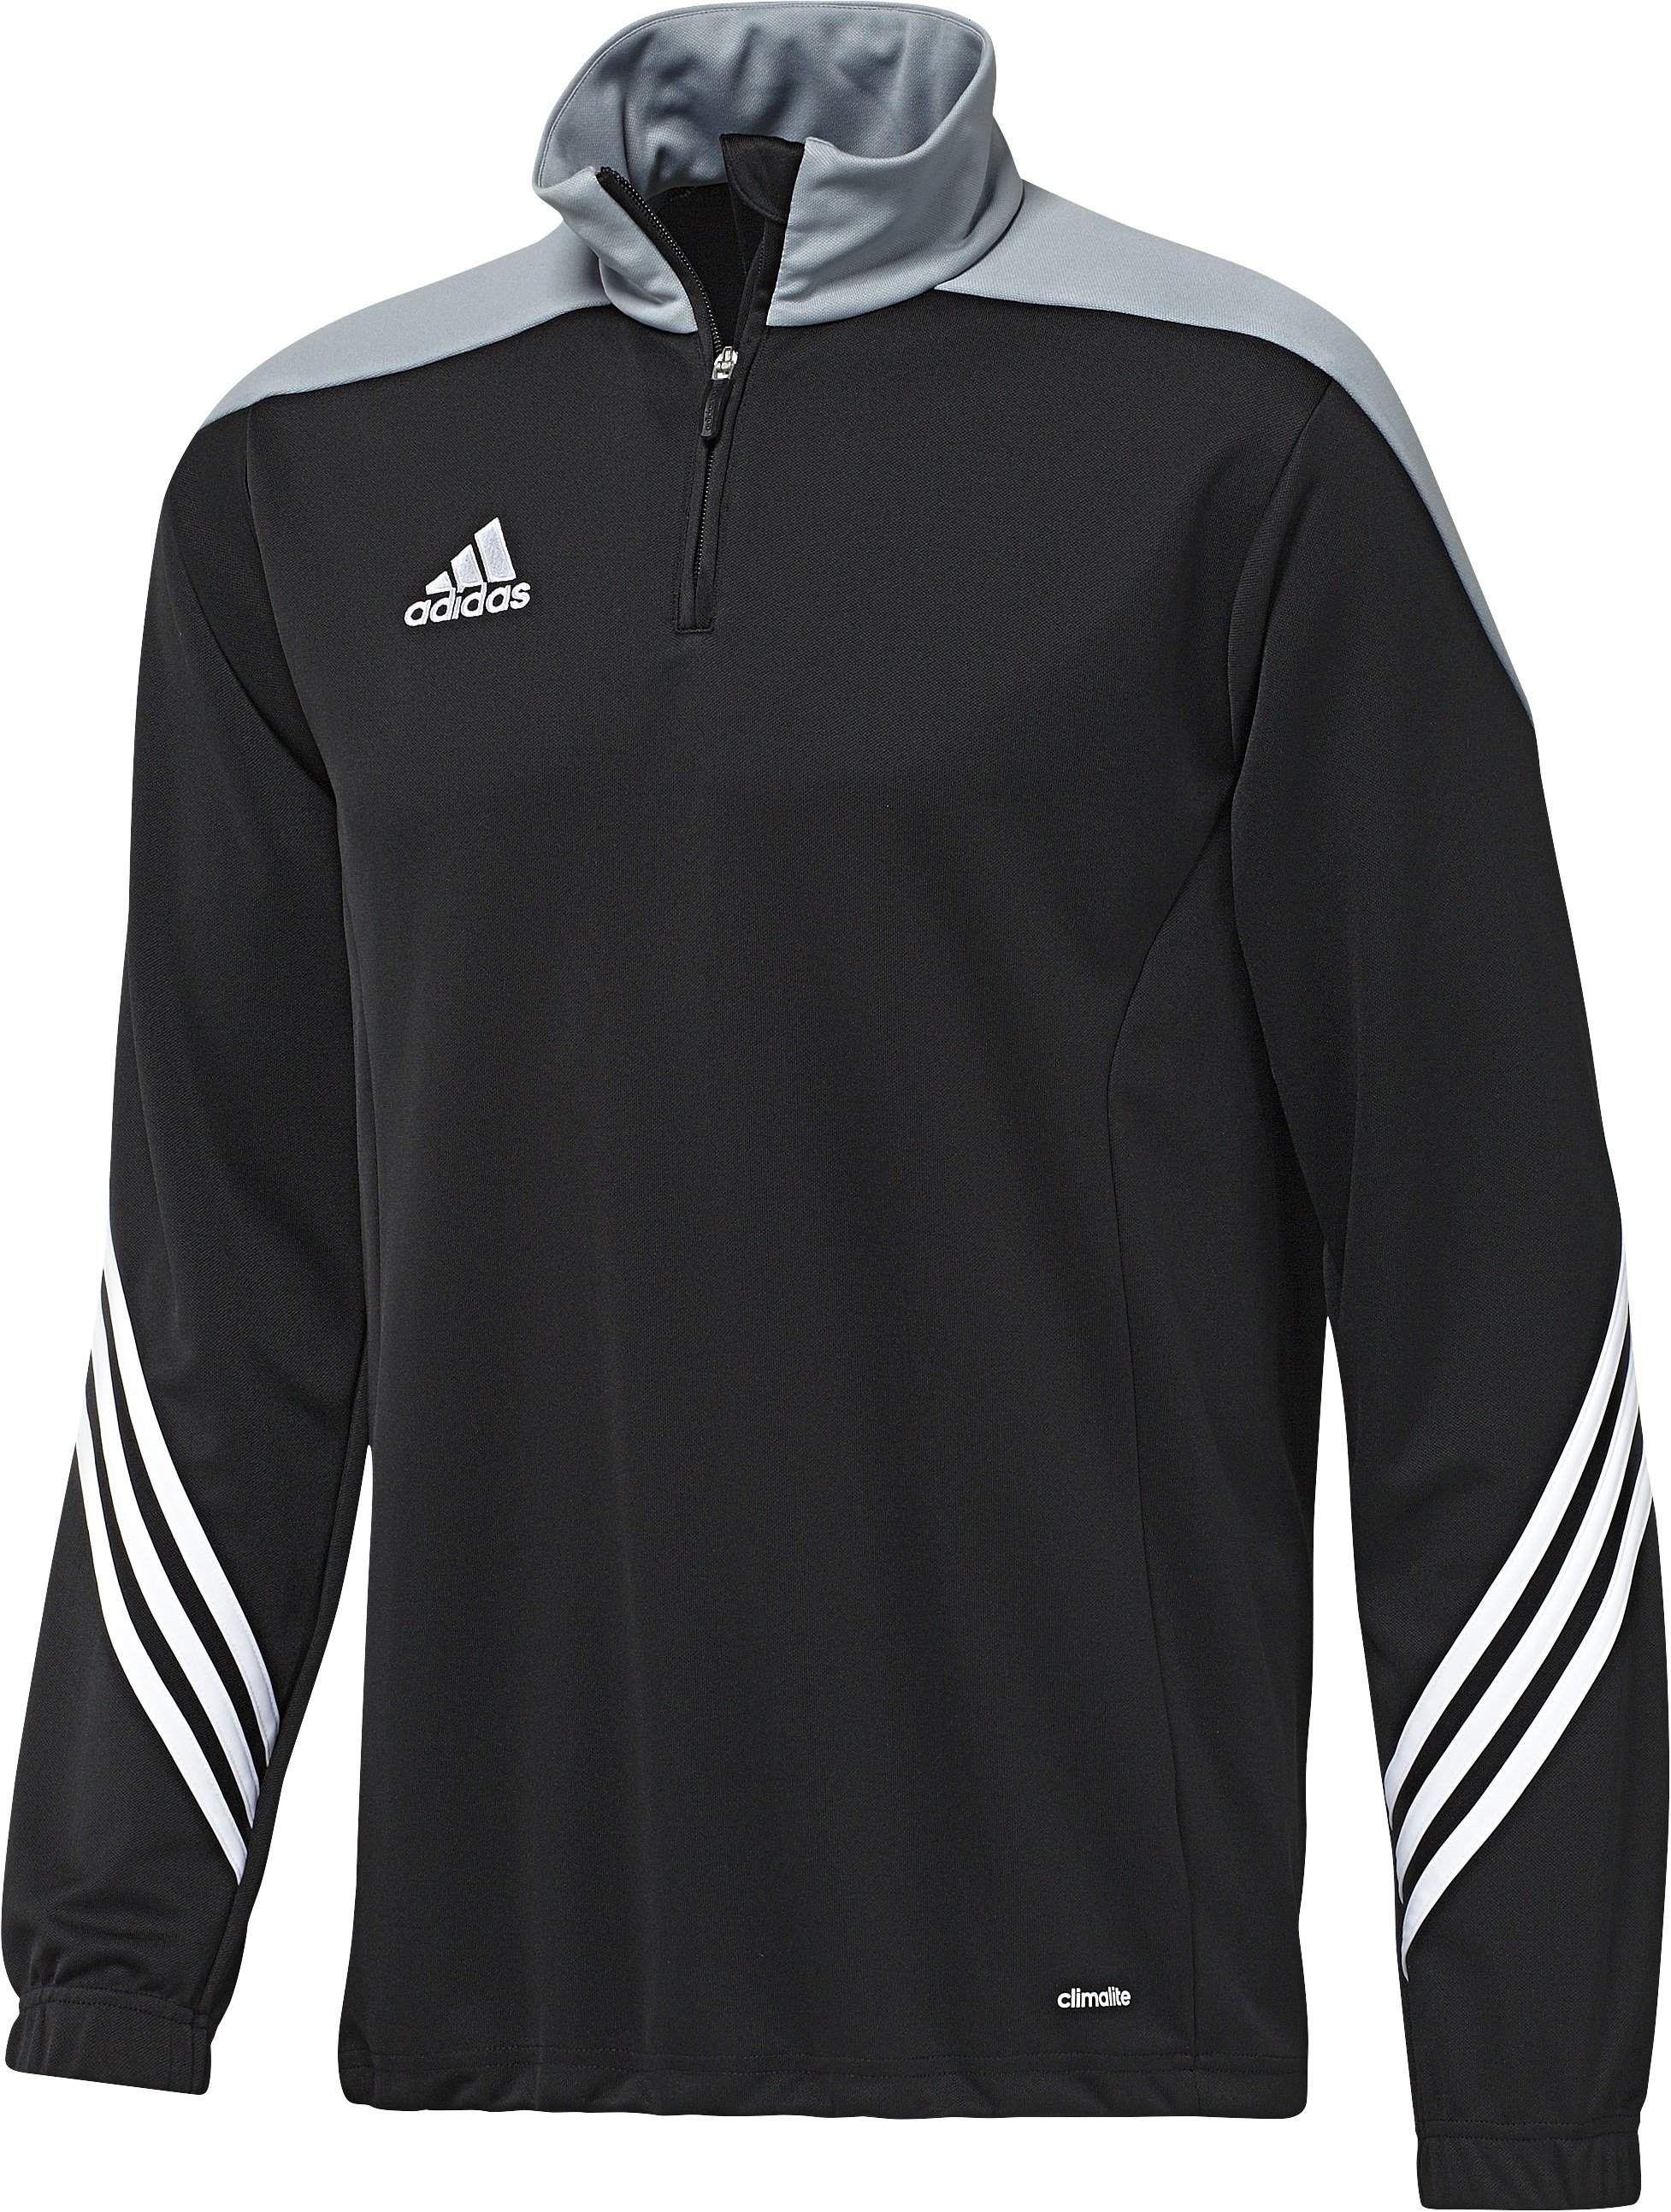 Mikina adidas SERE14 TRG TO Y